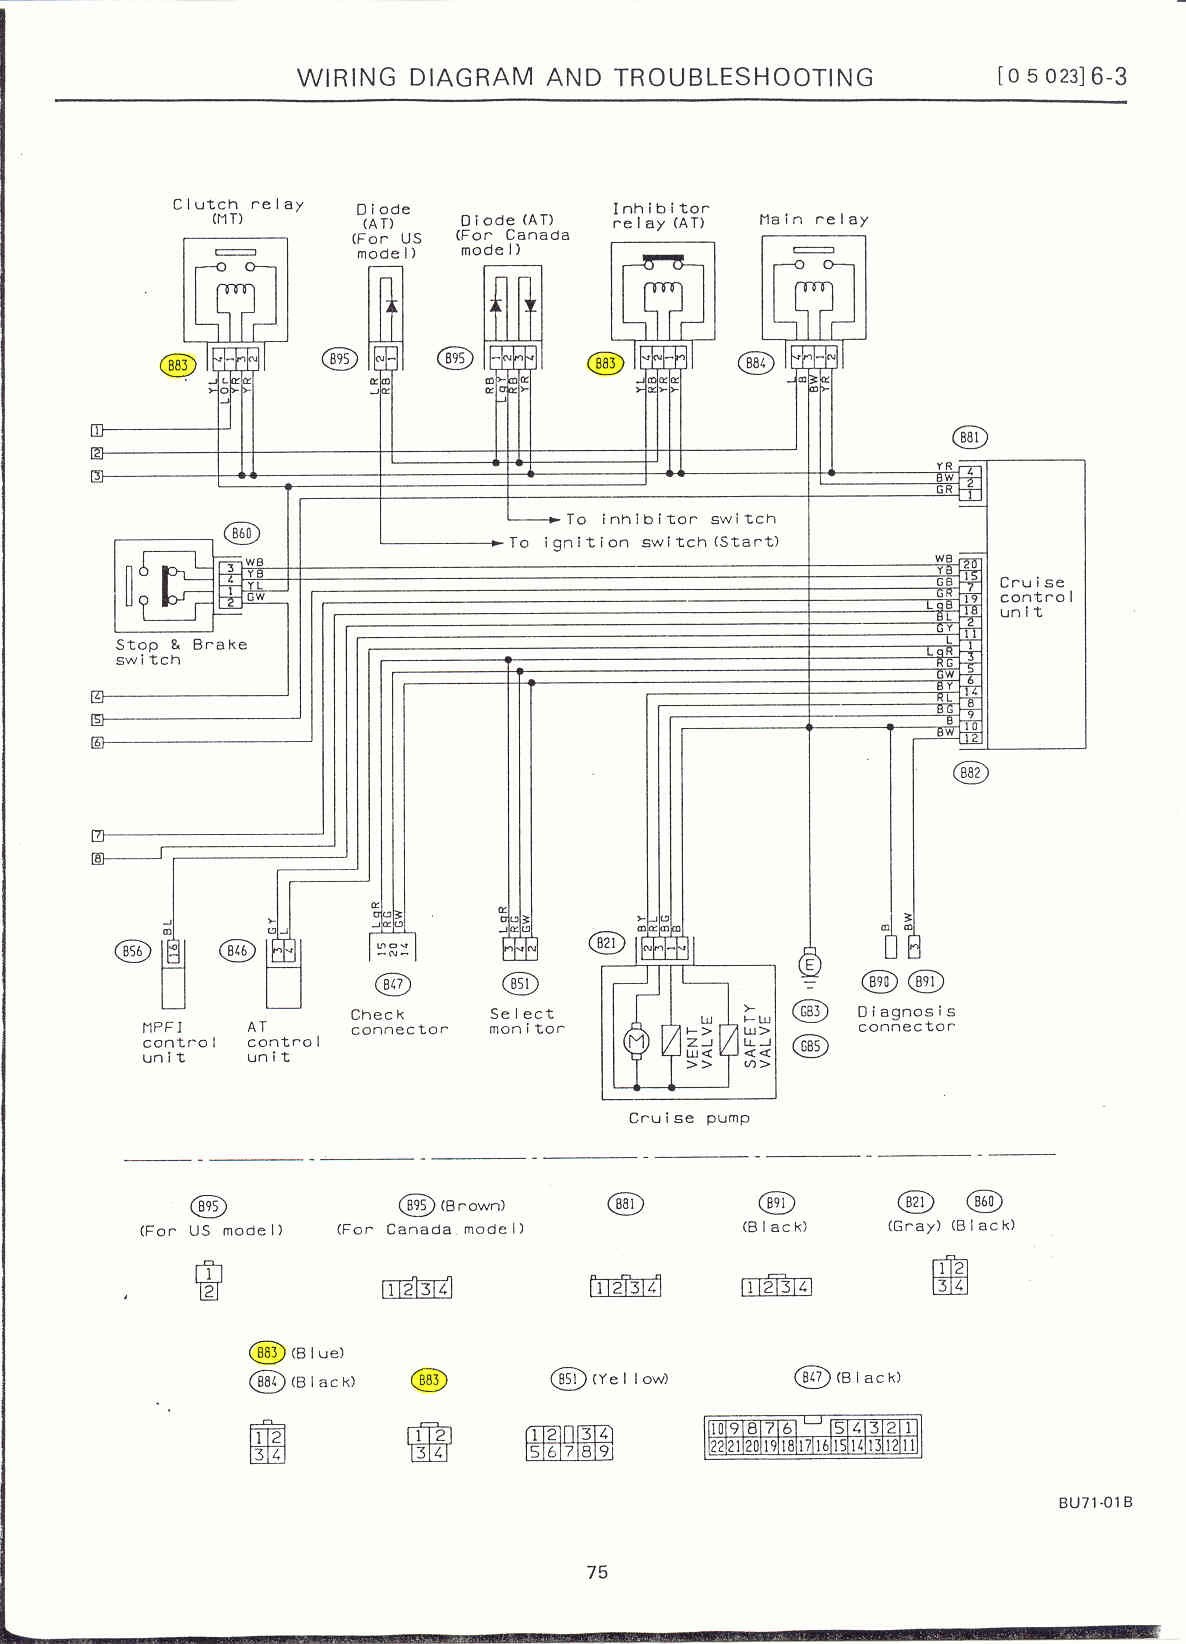 Subaru Forester Wipers Electrical Diagram Opinions About Wiring Radio Harness 98 Impreza Stereo Free Download U2022 Oasis Dl Co Rh 2006